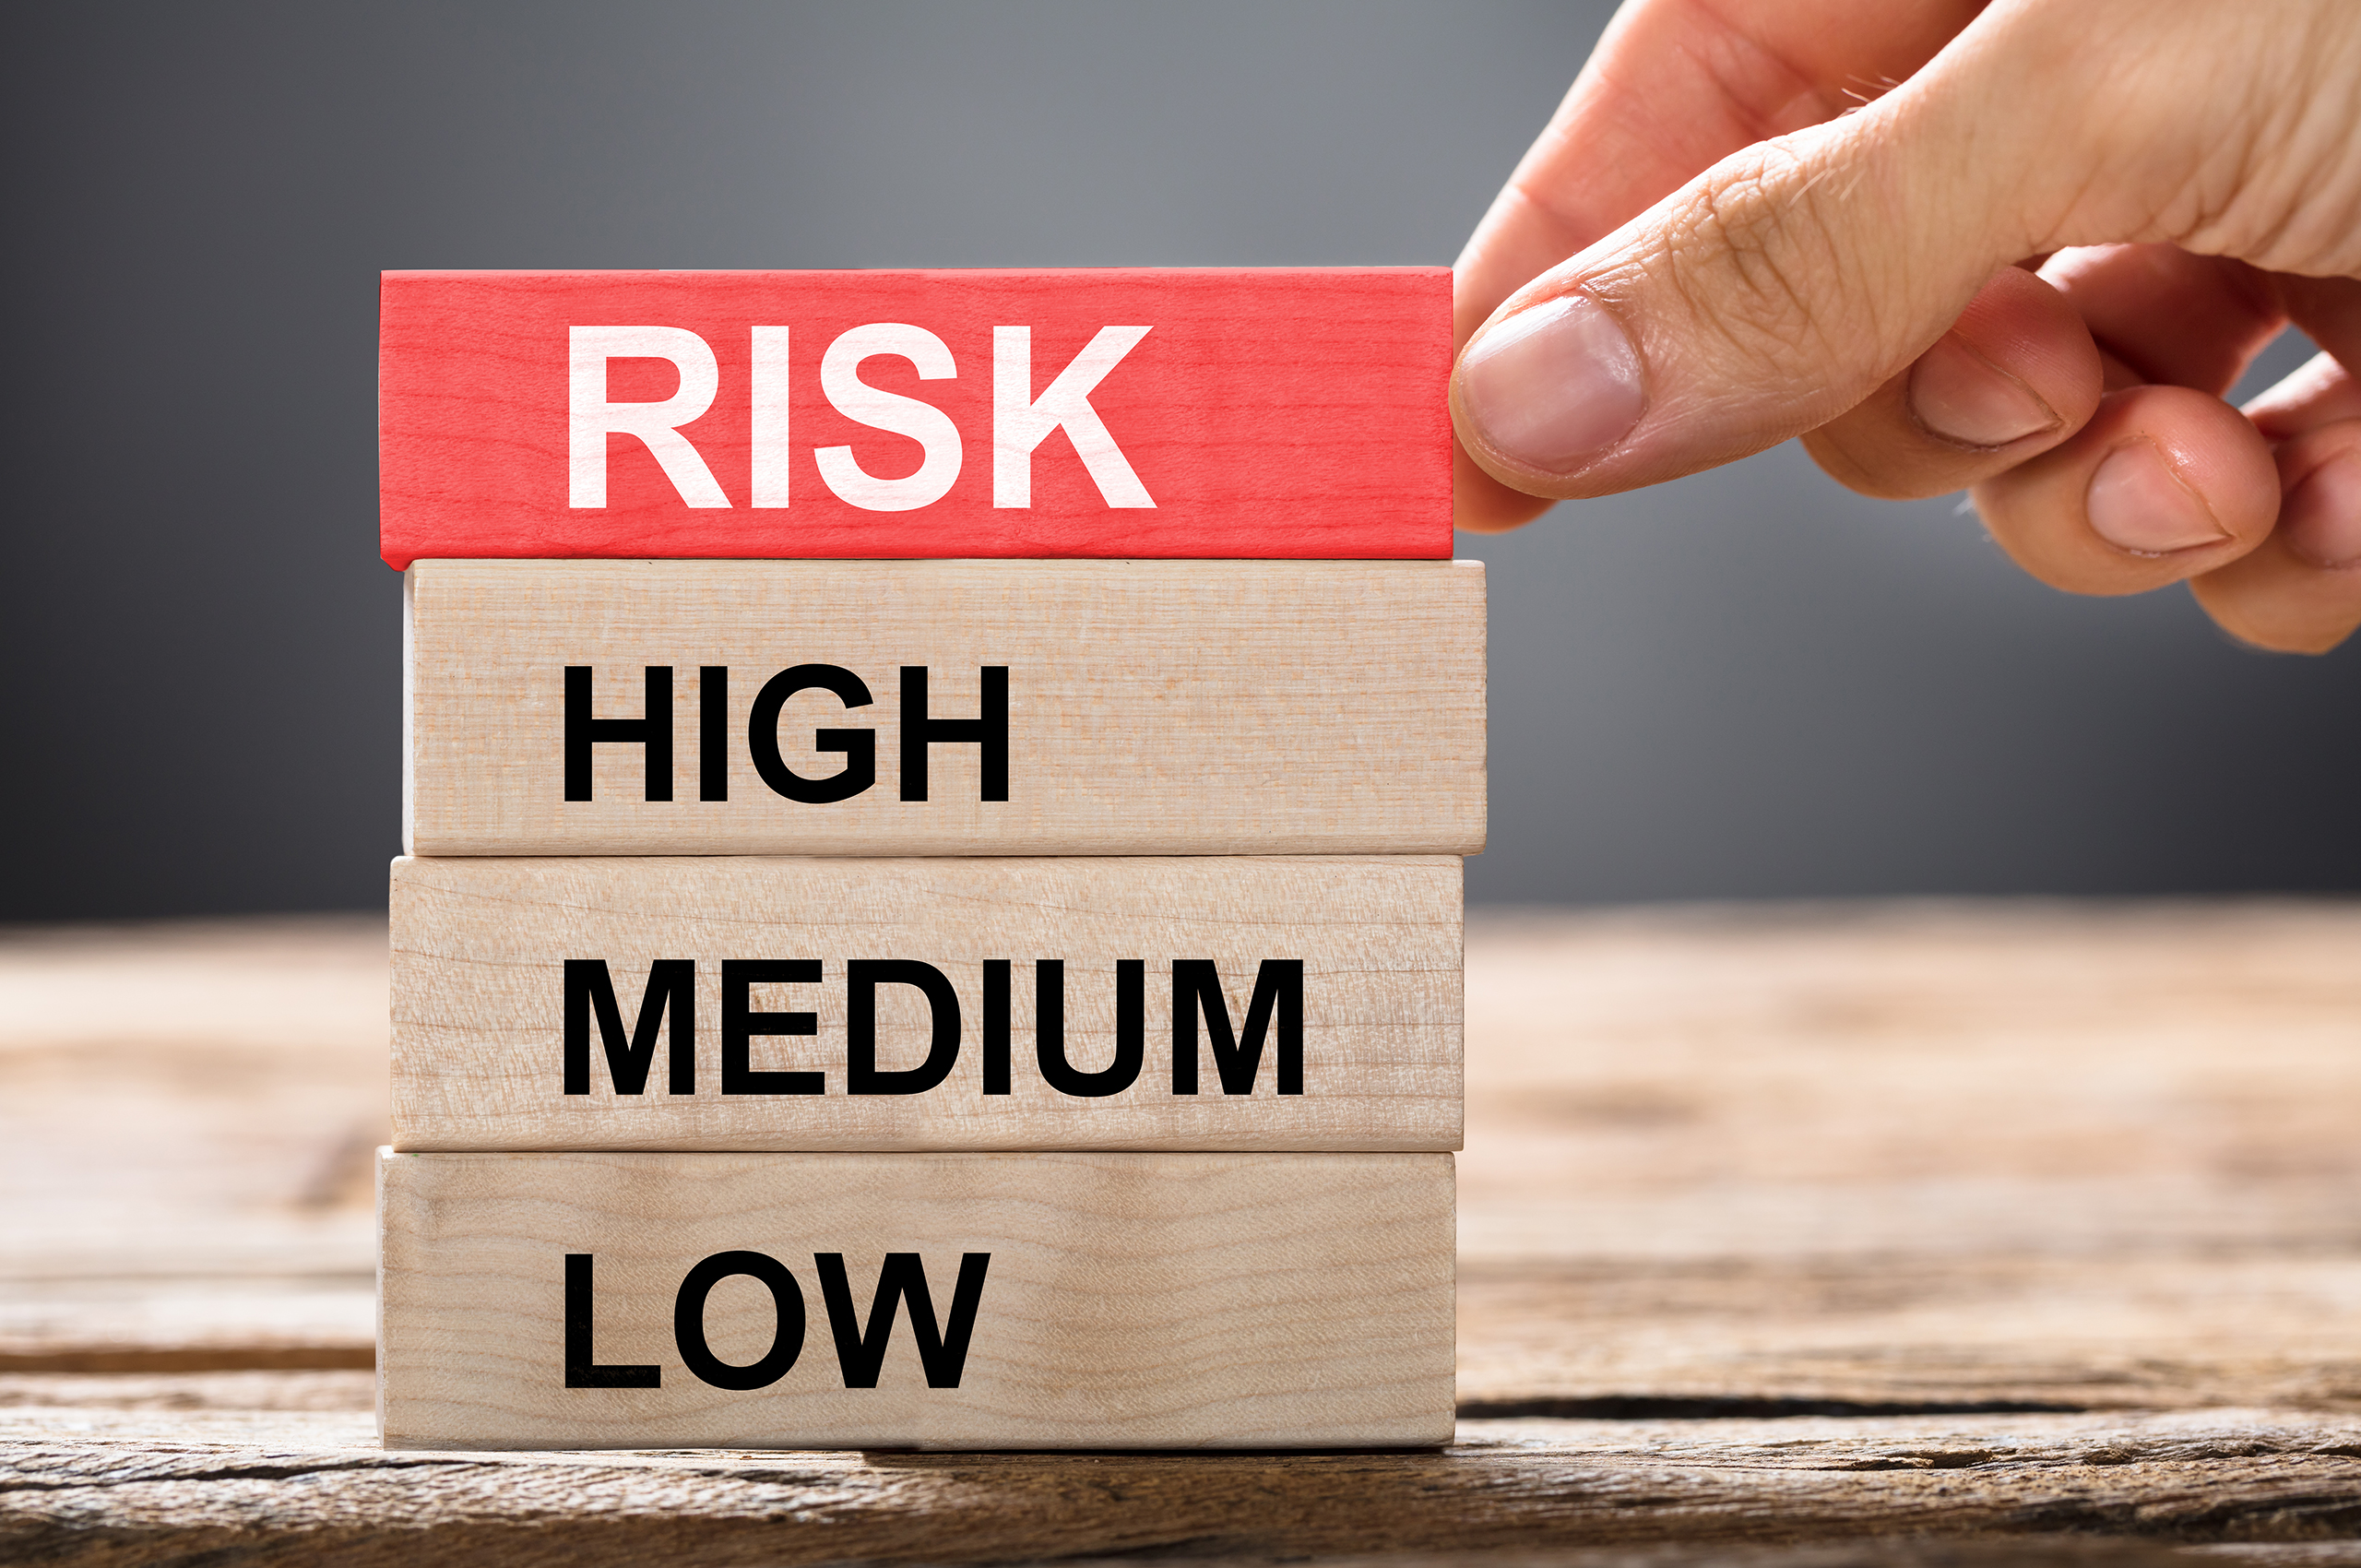 """A hand stacks wooden blocks. The blocks each have a word on them, and the top block is colored red. The top block reads """"risk"""", the others read """"high"""", """"medium"""", """"low."""" from top to bottom."""